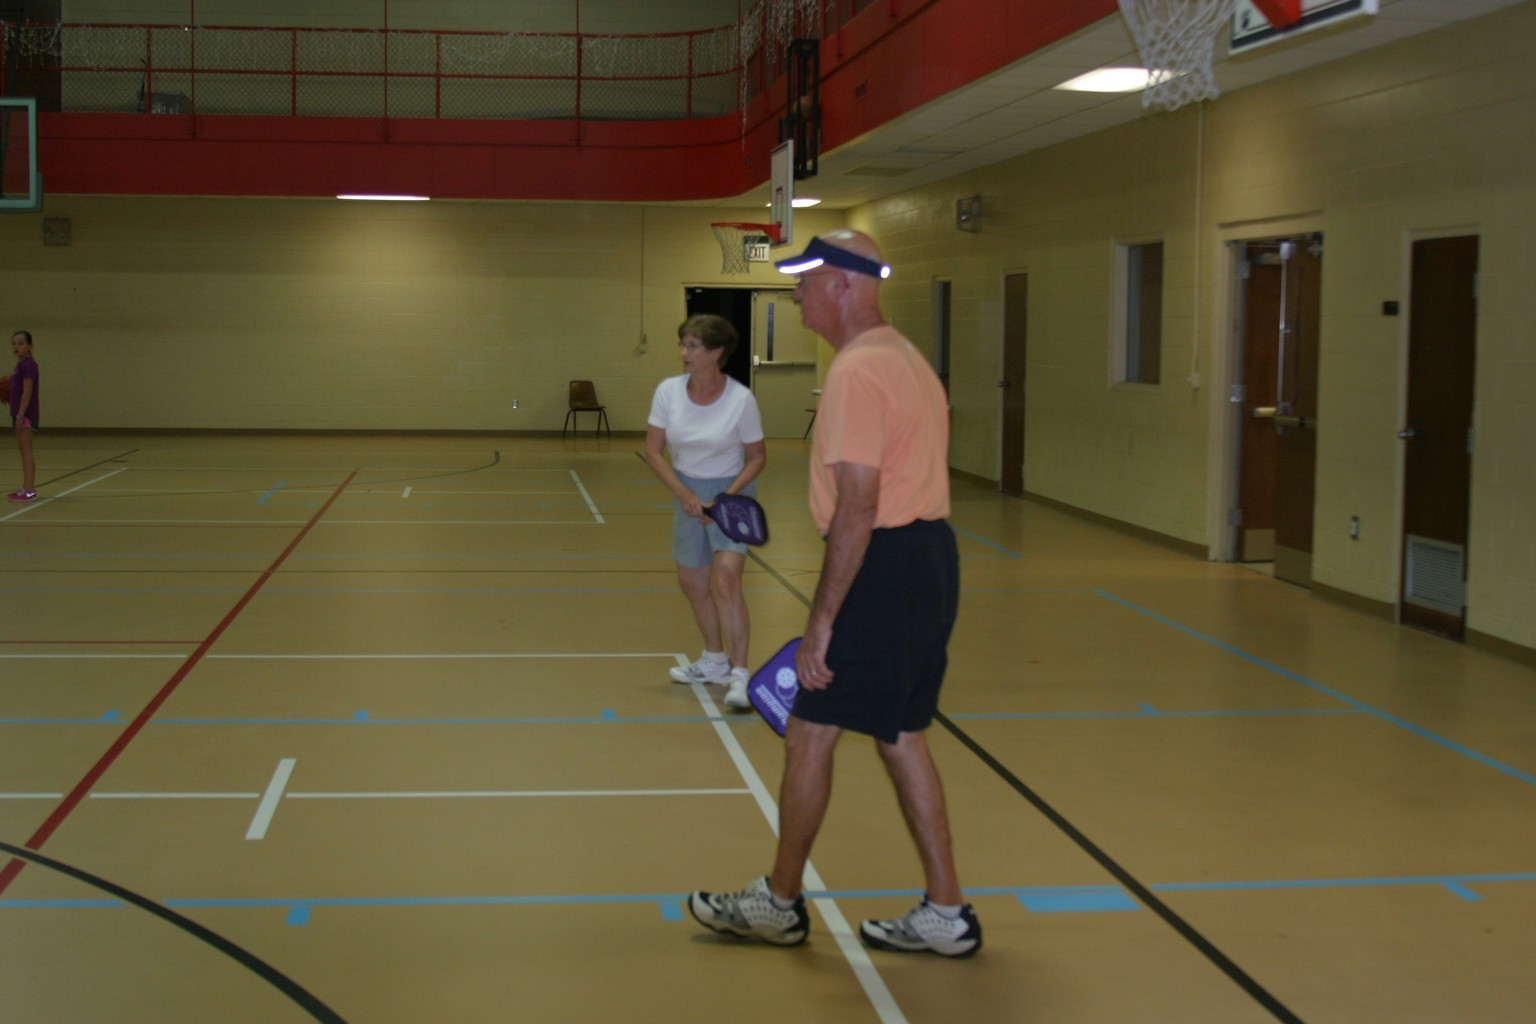 husband and wife playing pickleball in trussville alabama, alabama pickleball, trussville pickleball, birmingham pickleball, southside pickleball